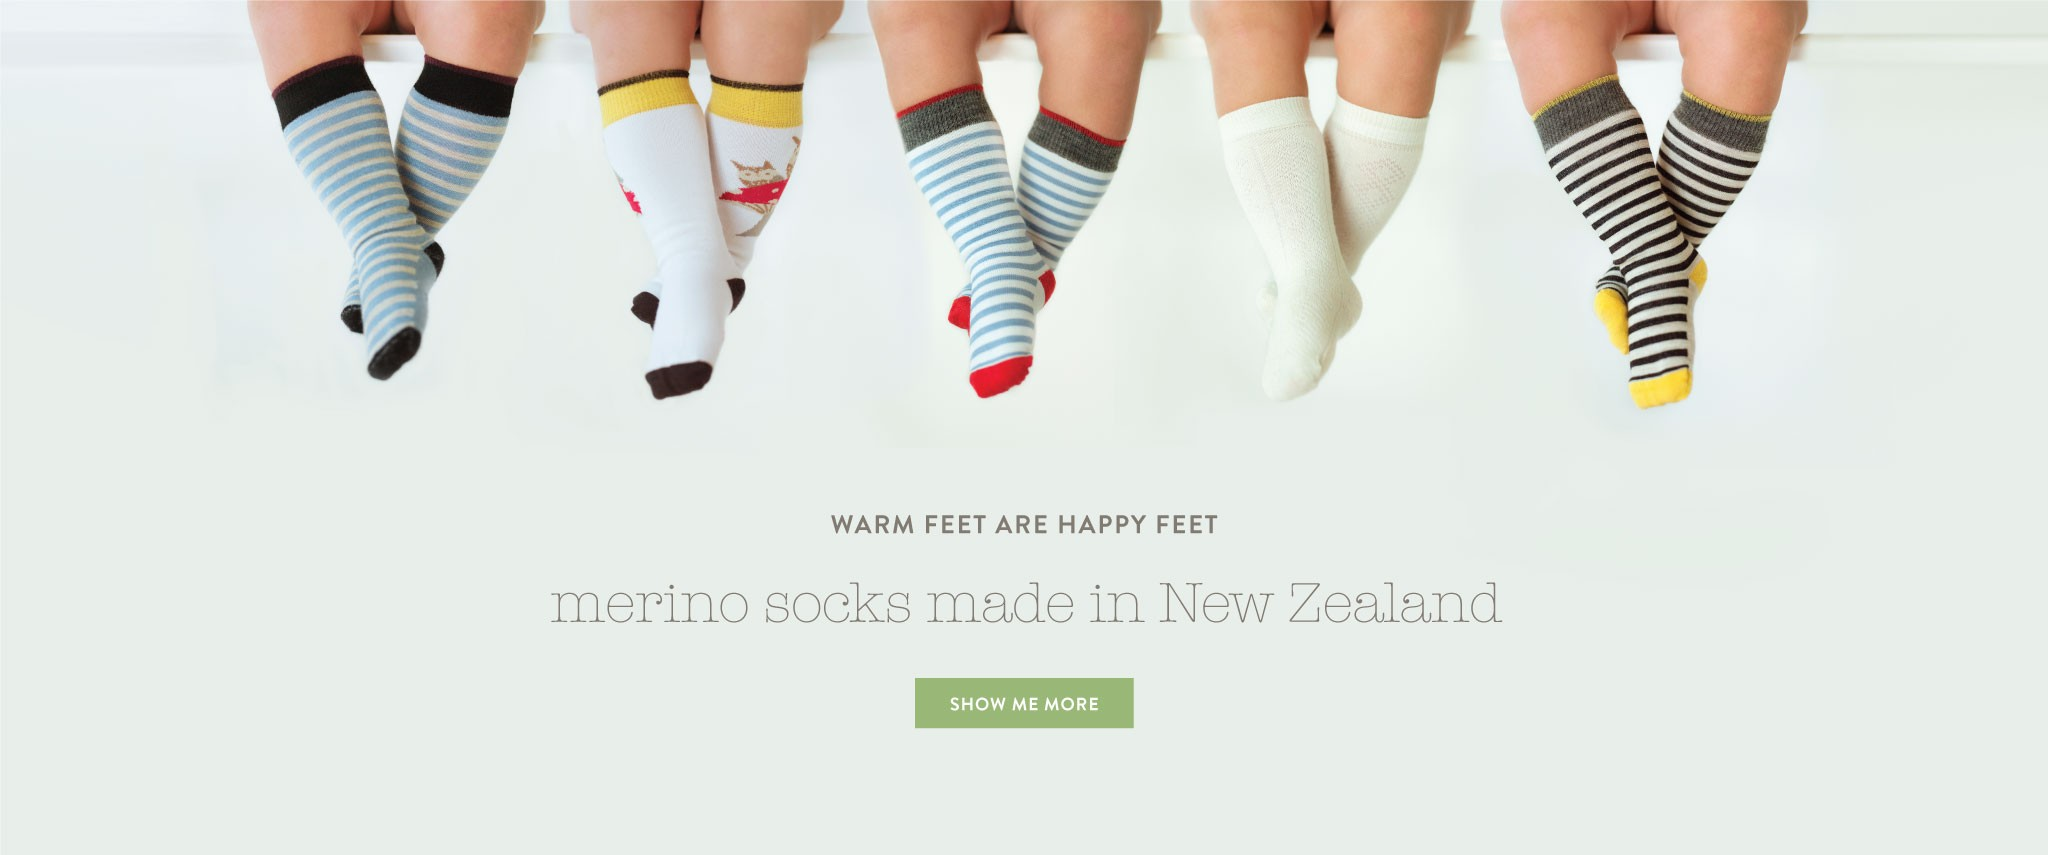 merino socks for babies and children - merino socks made in nz